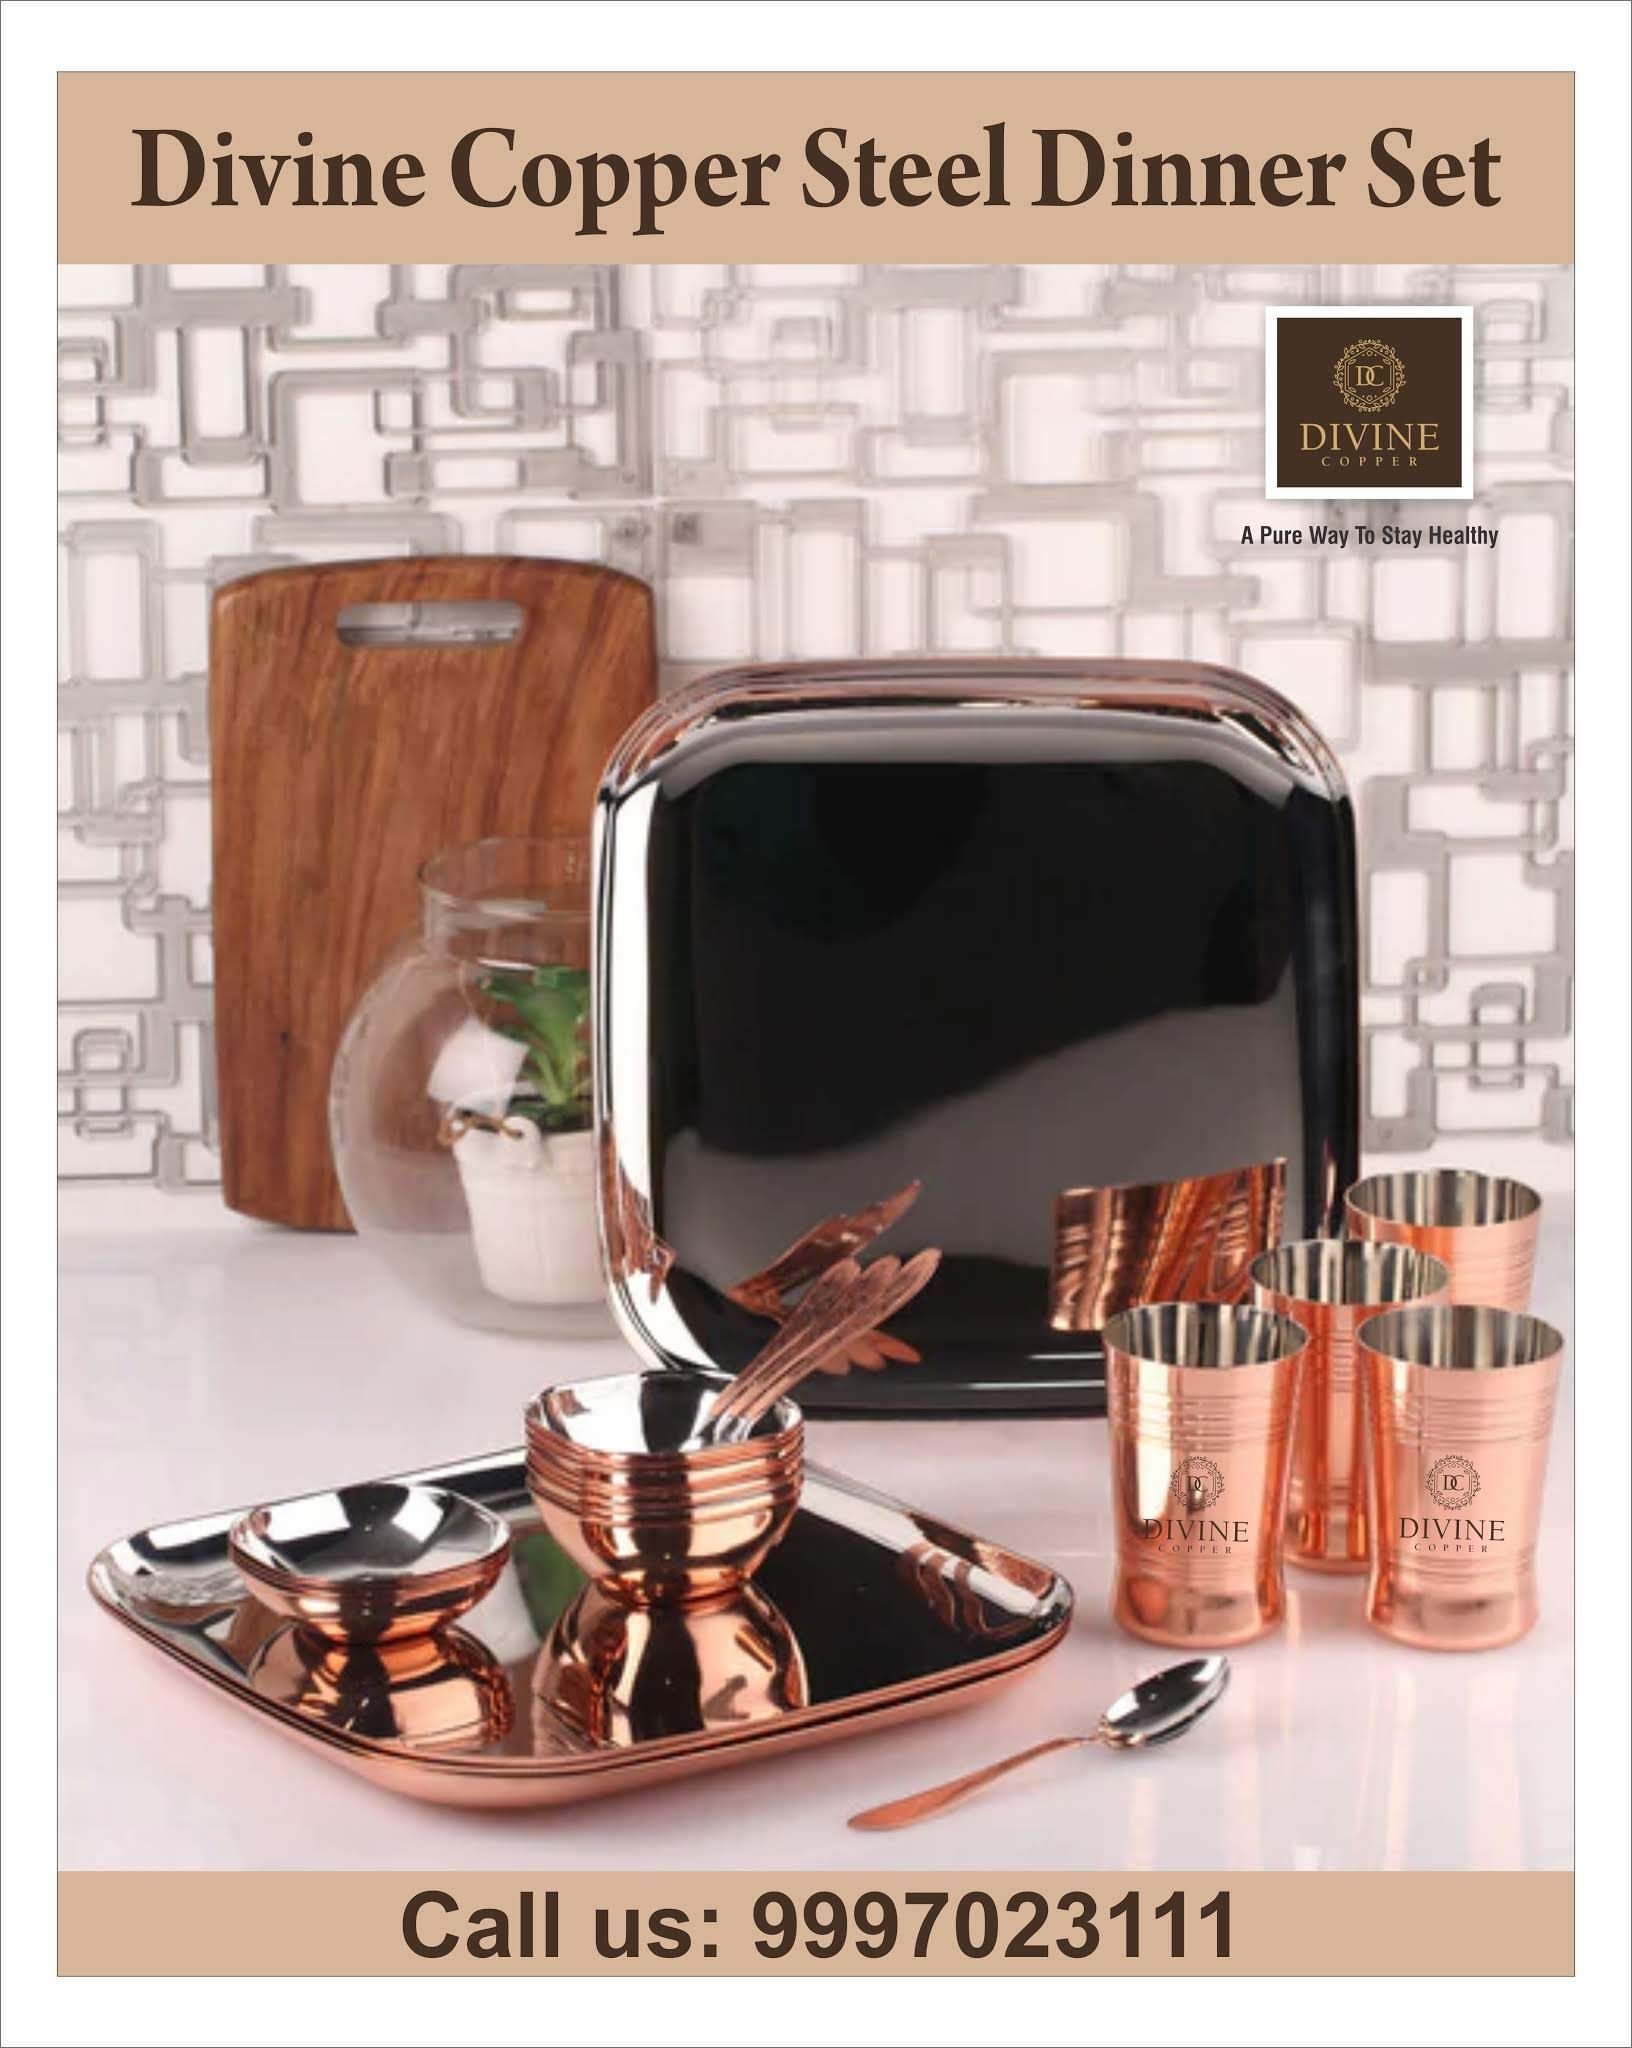 Shop For Our Amazing Range Of Copper Dining Accessories